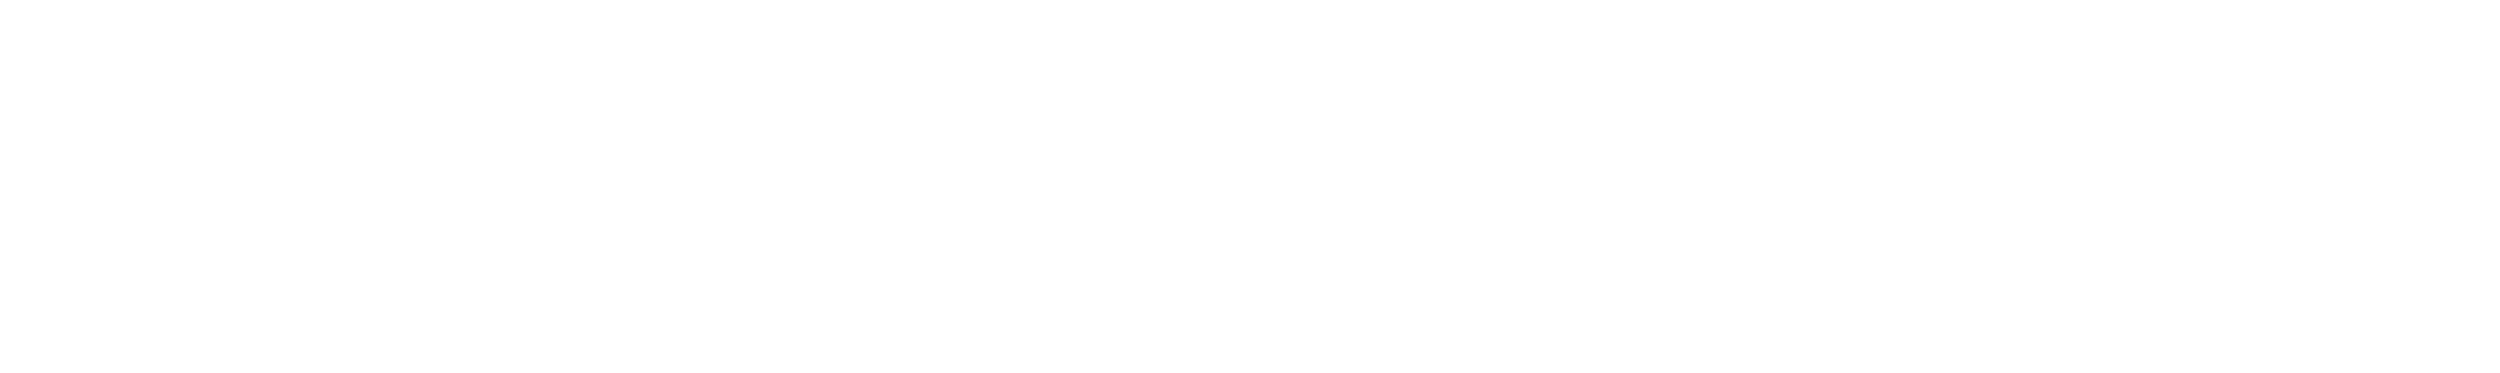 Quote_5.png